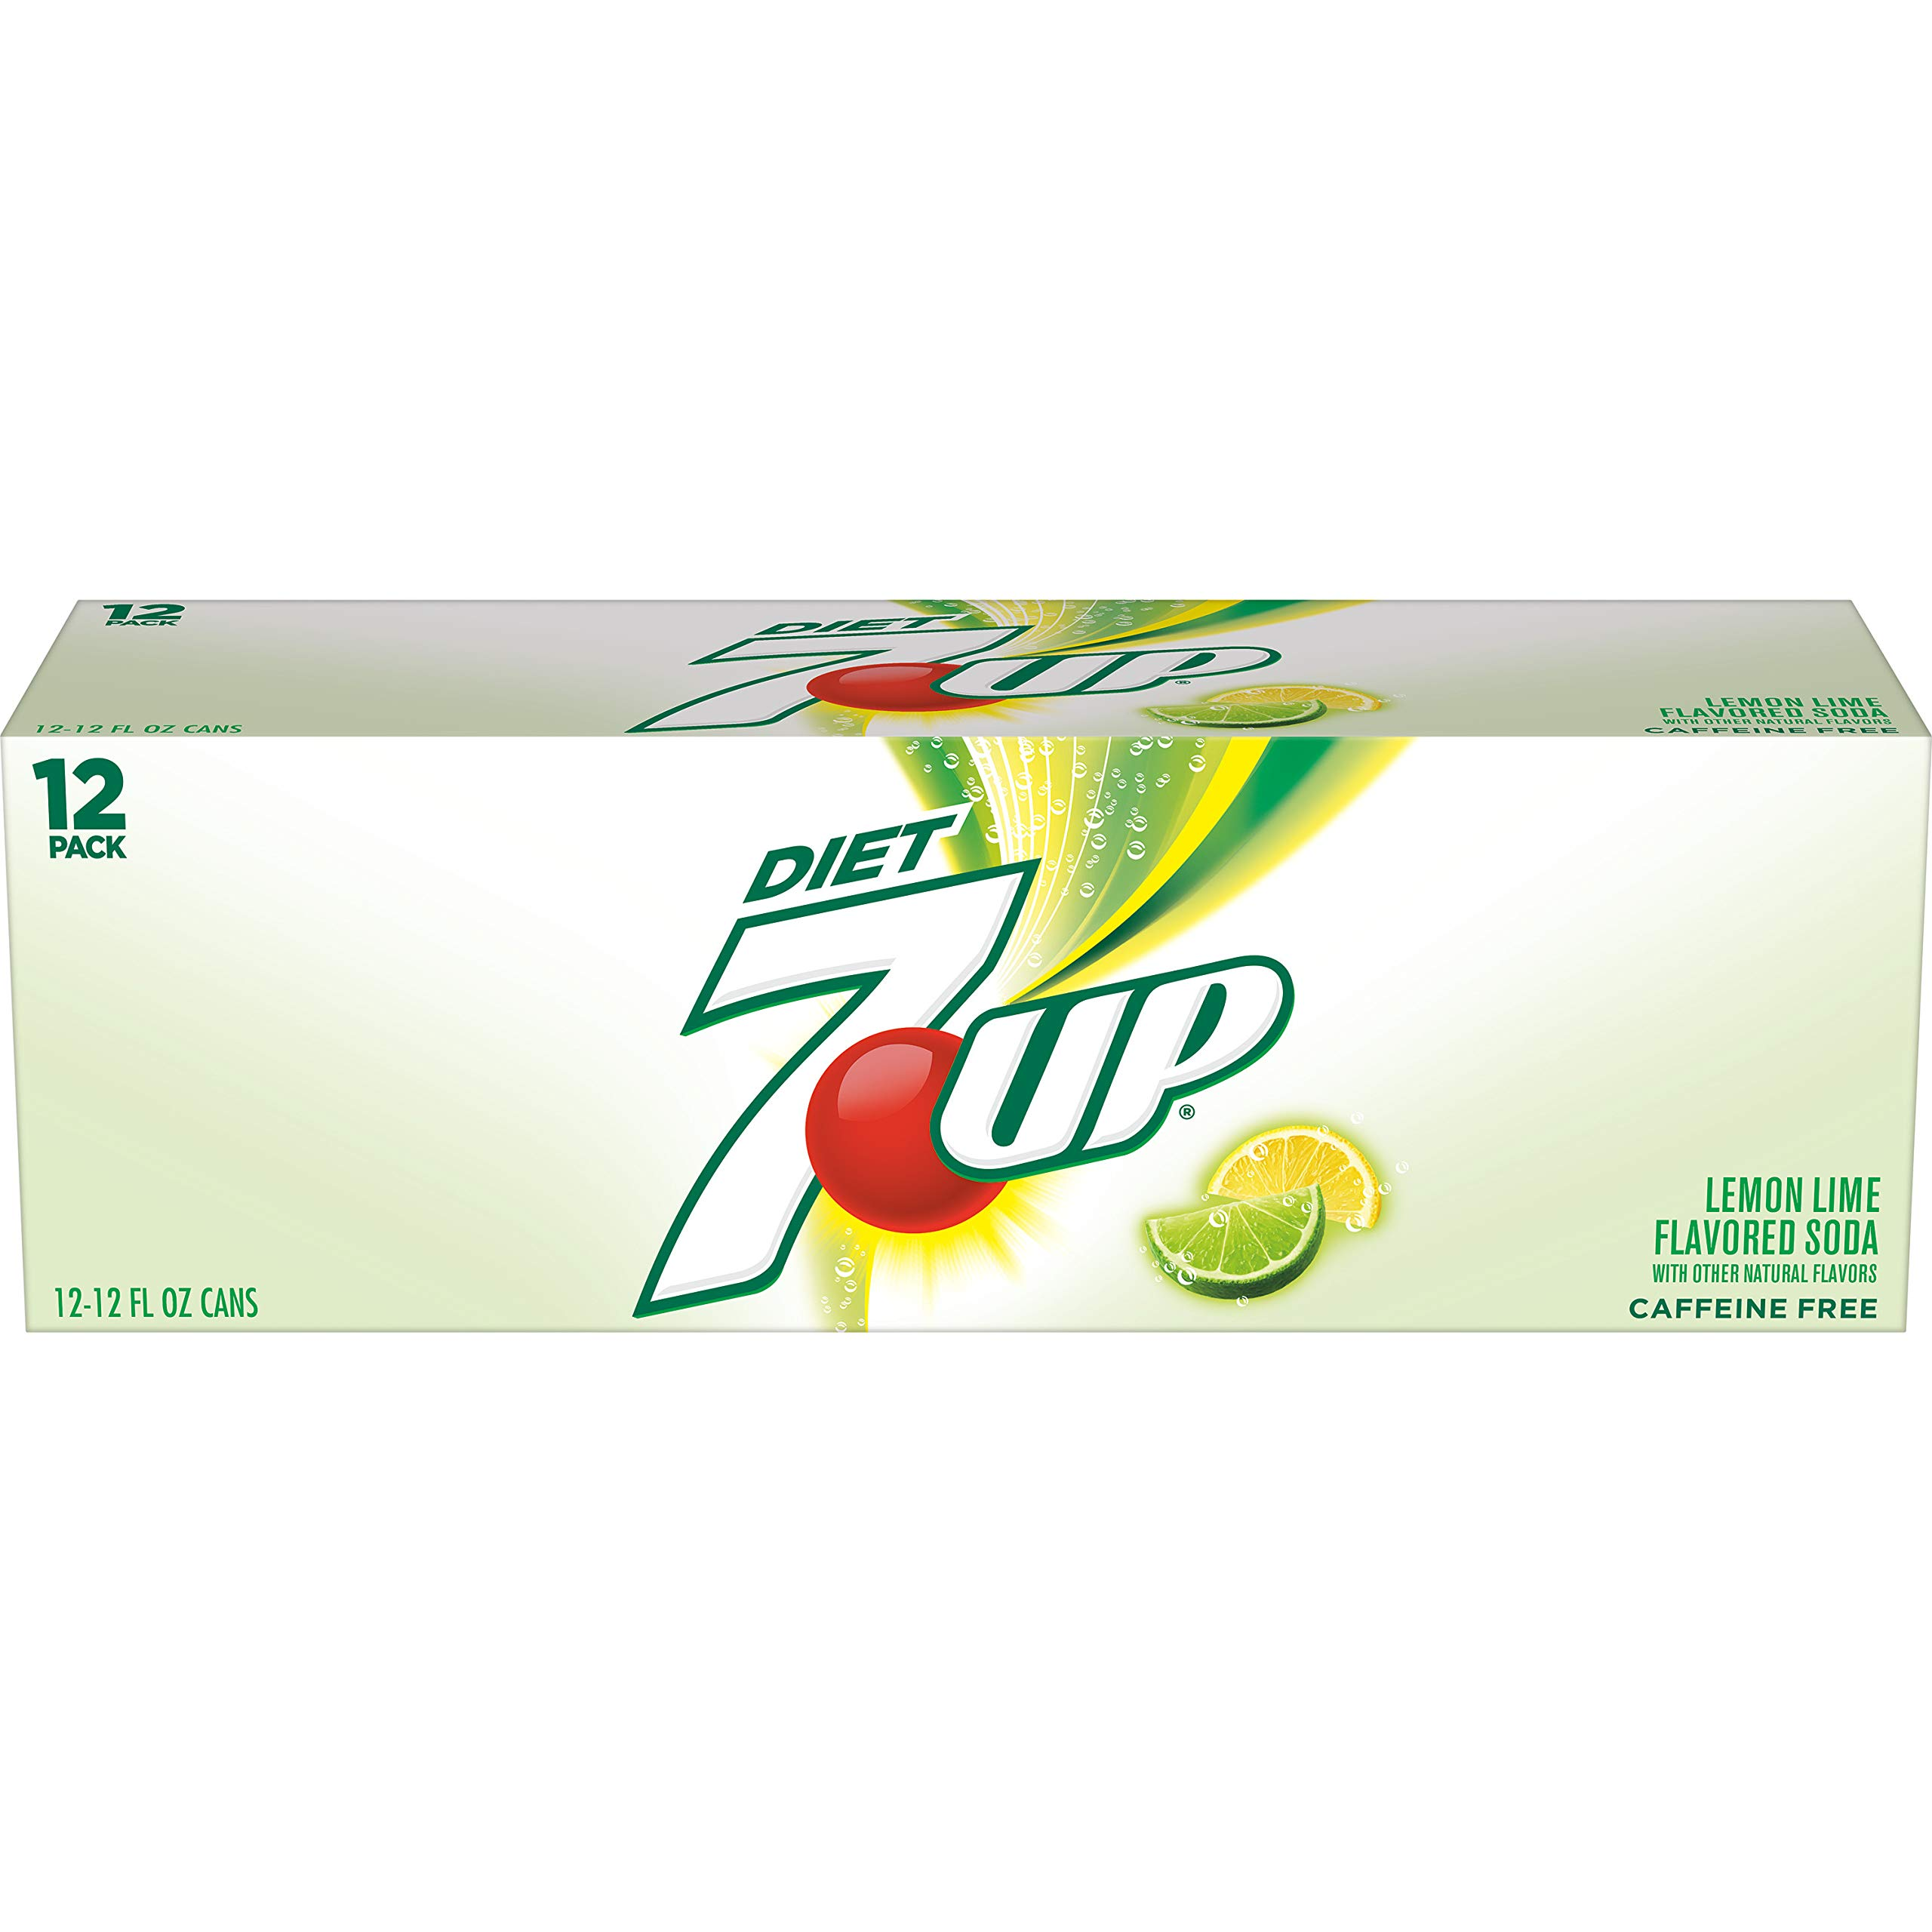 Diet 7UP Lemon Lime Soda, Zero Calories and Caffeine Free, 12 Fl Oz Cans (pack of 12)